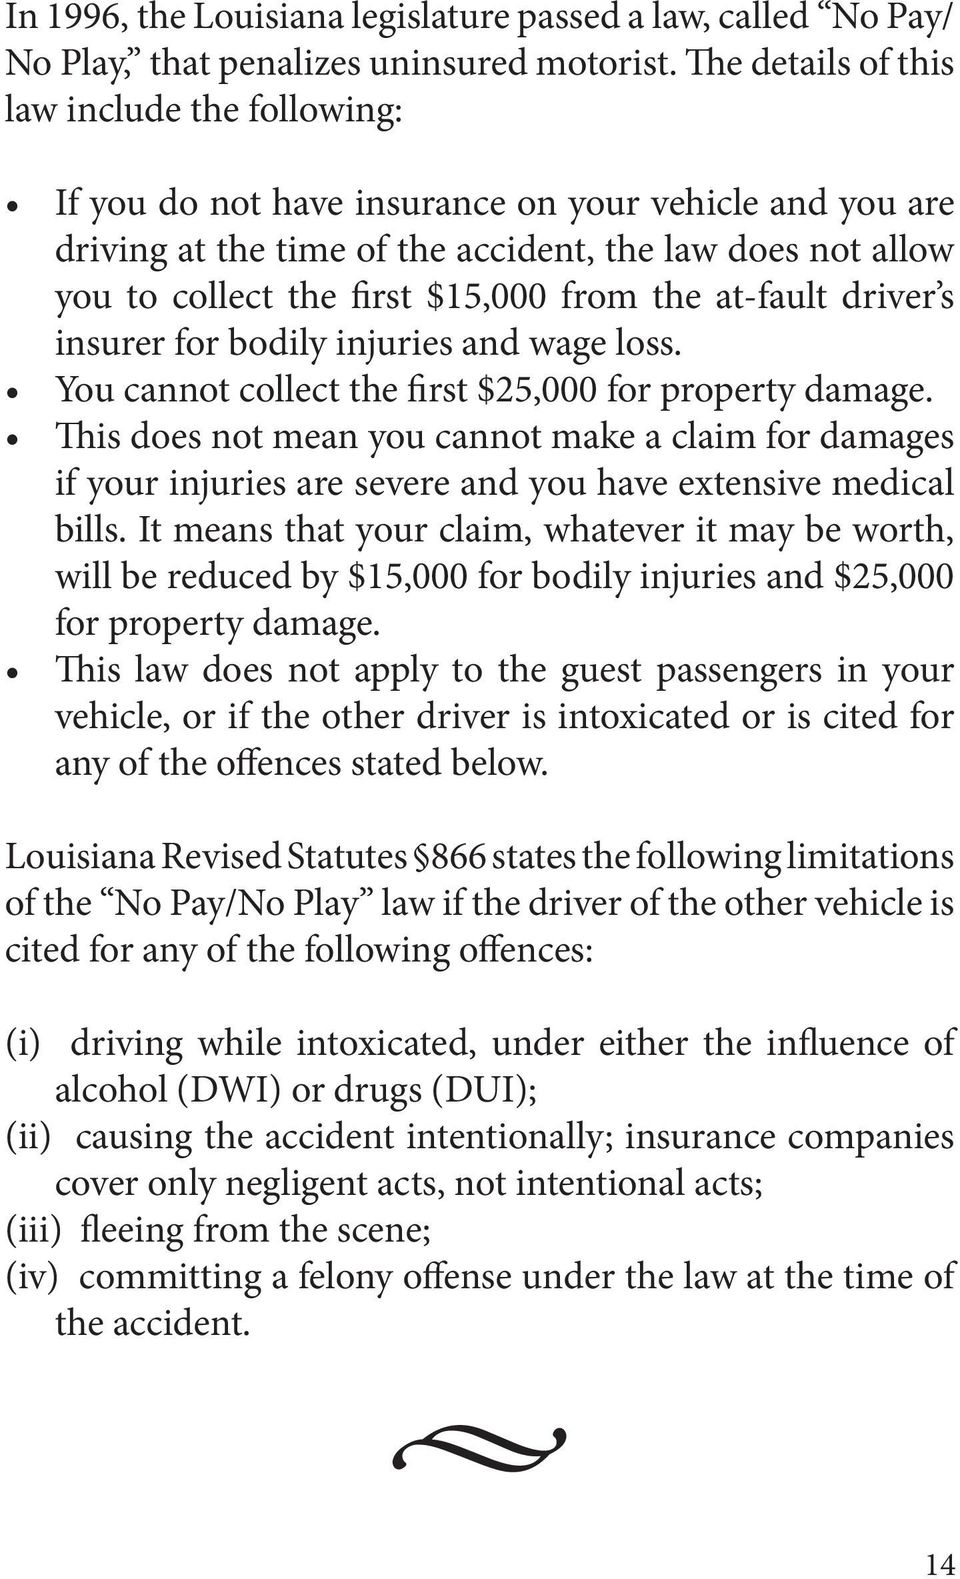 from the at-fault driver s insurer for bodily injuries and wage loss. You cannot collect the first $25,000 for property damage.